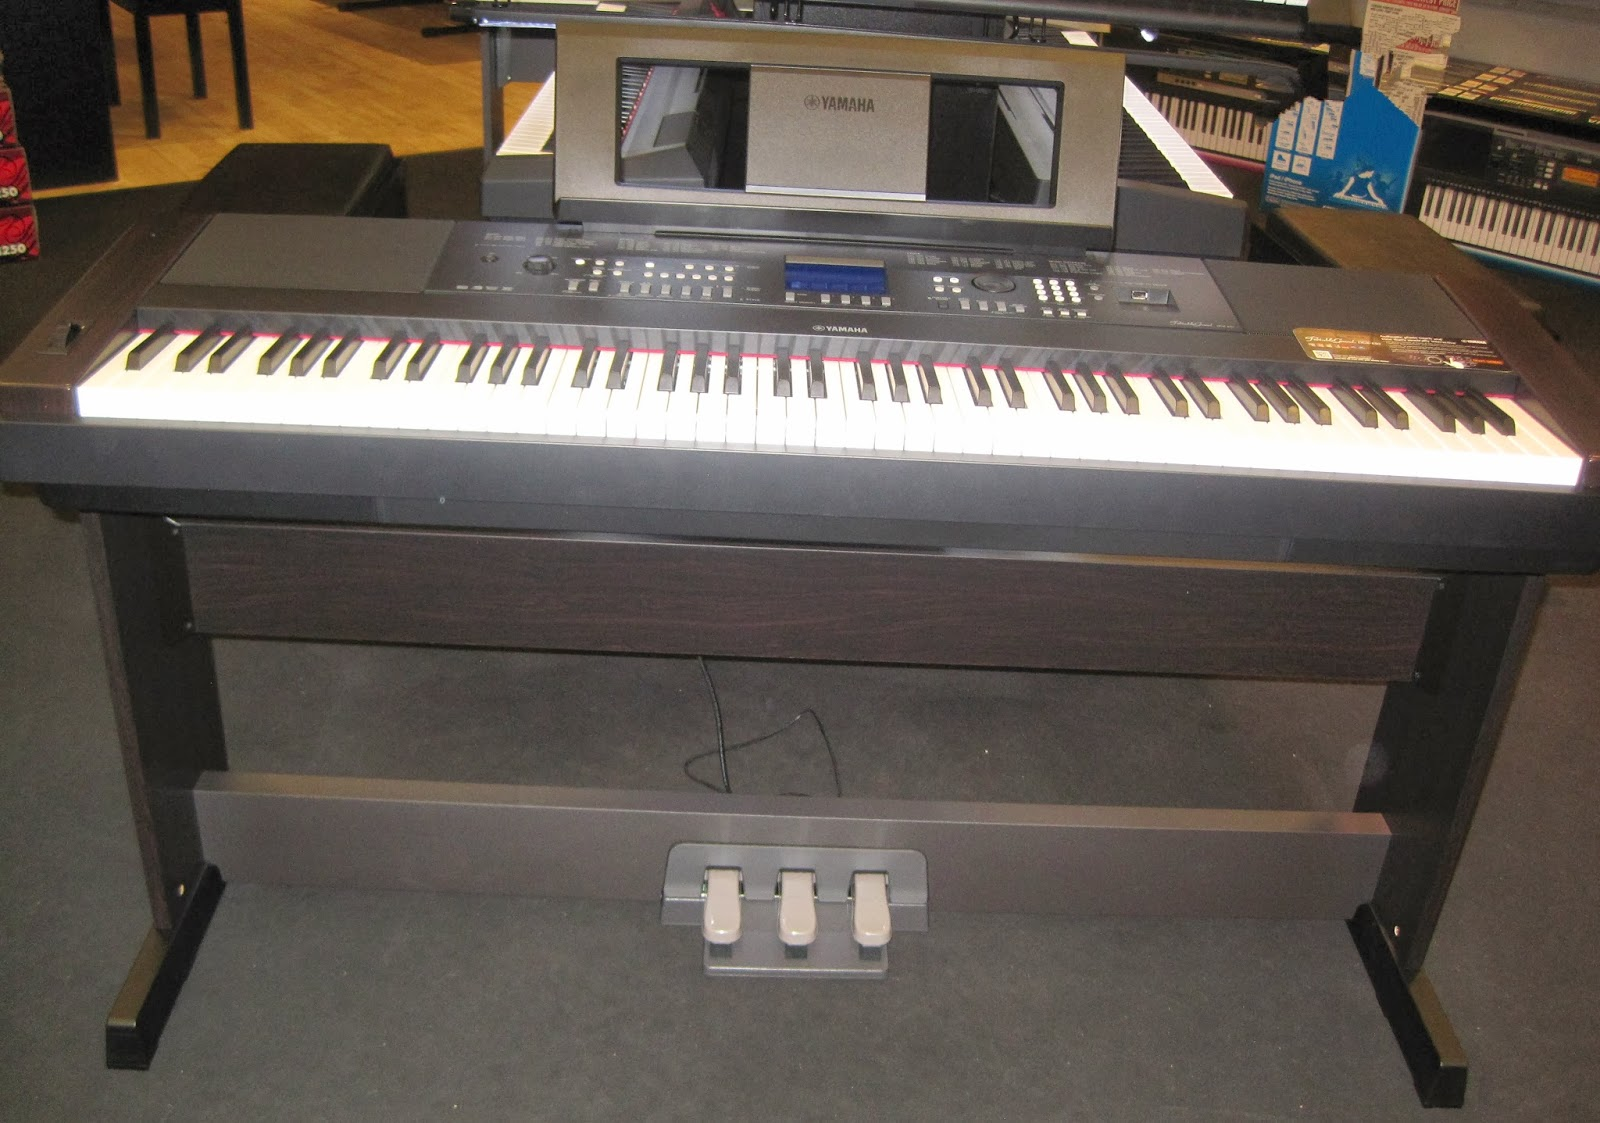 AZ PIANO REVIEWS: REVIEW - Yamaha DGX650 Digital Piano - Recommended